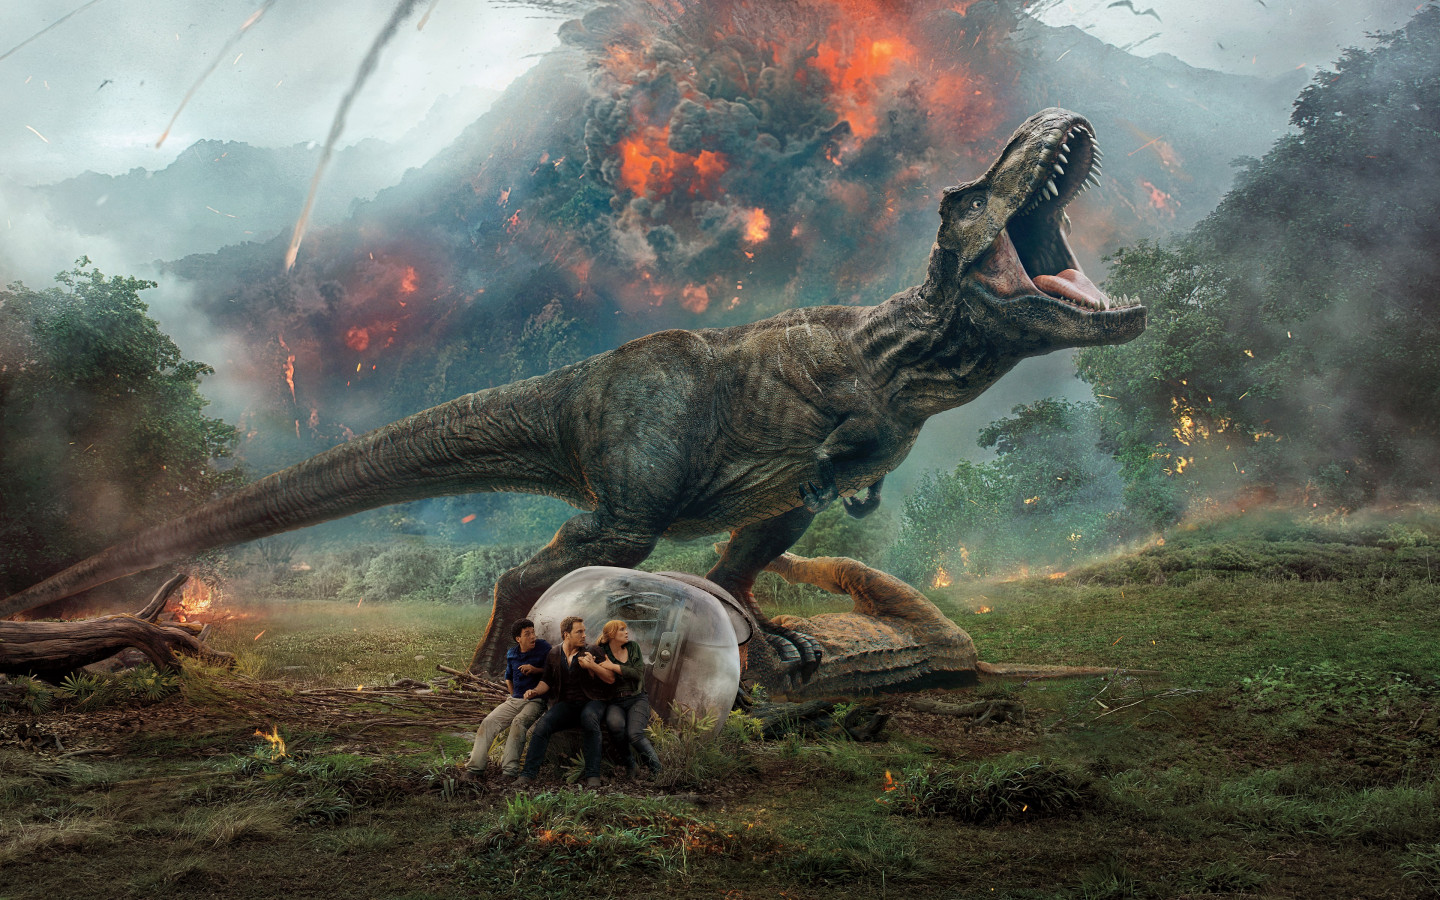 Jurassic World: Fallen Kingdom wallpaper 1440x900